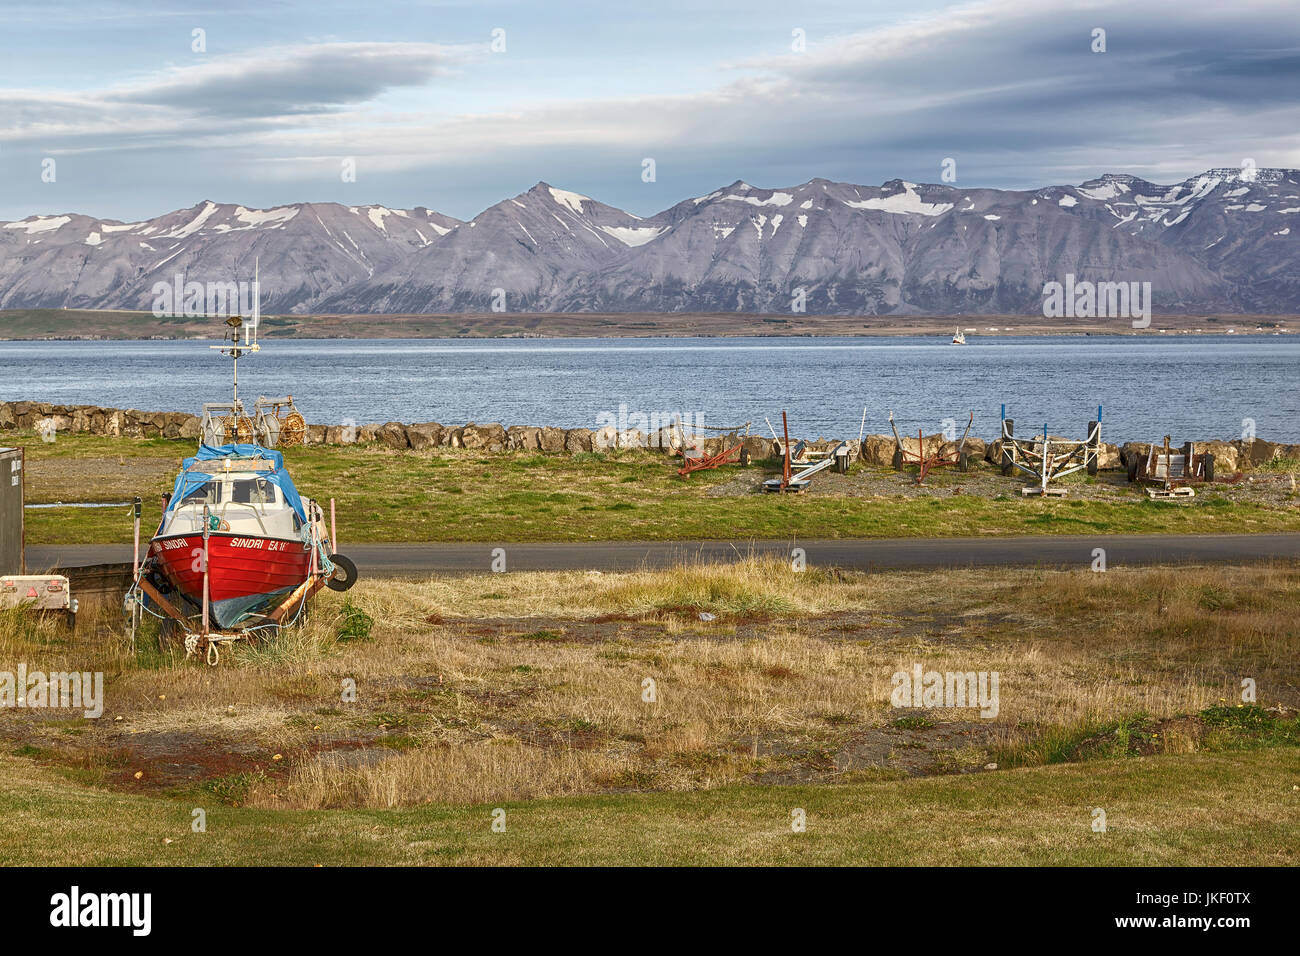 A Northern Boatyard in Iceland - Stock Image